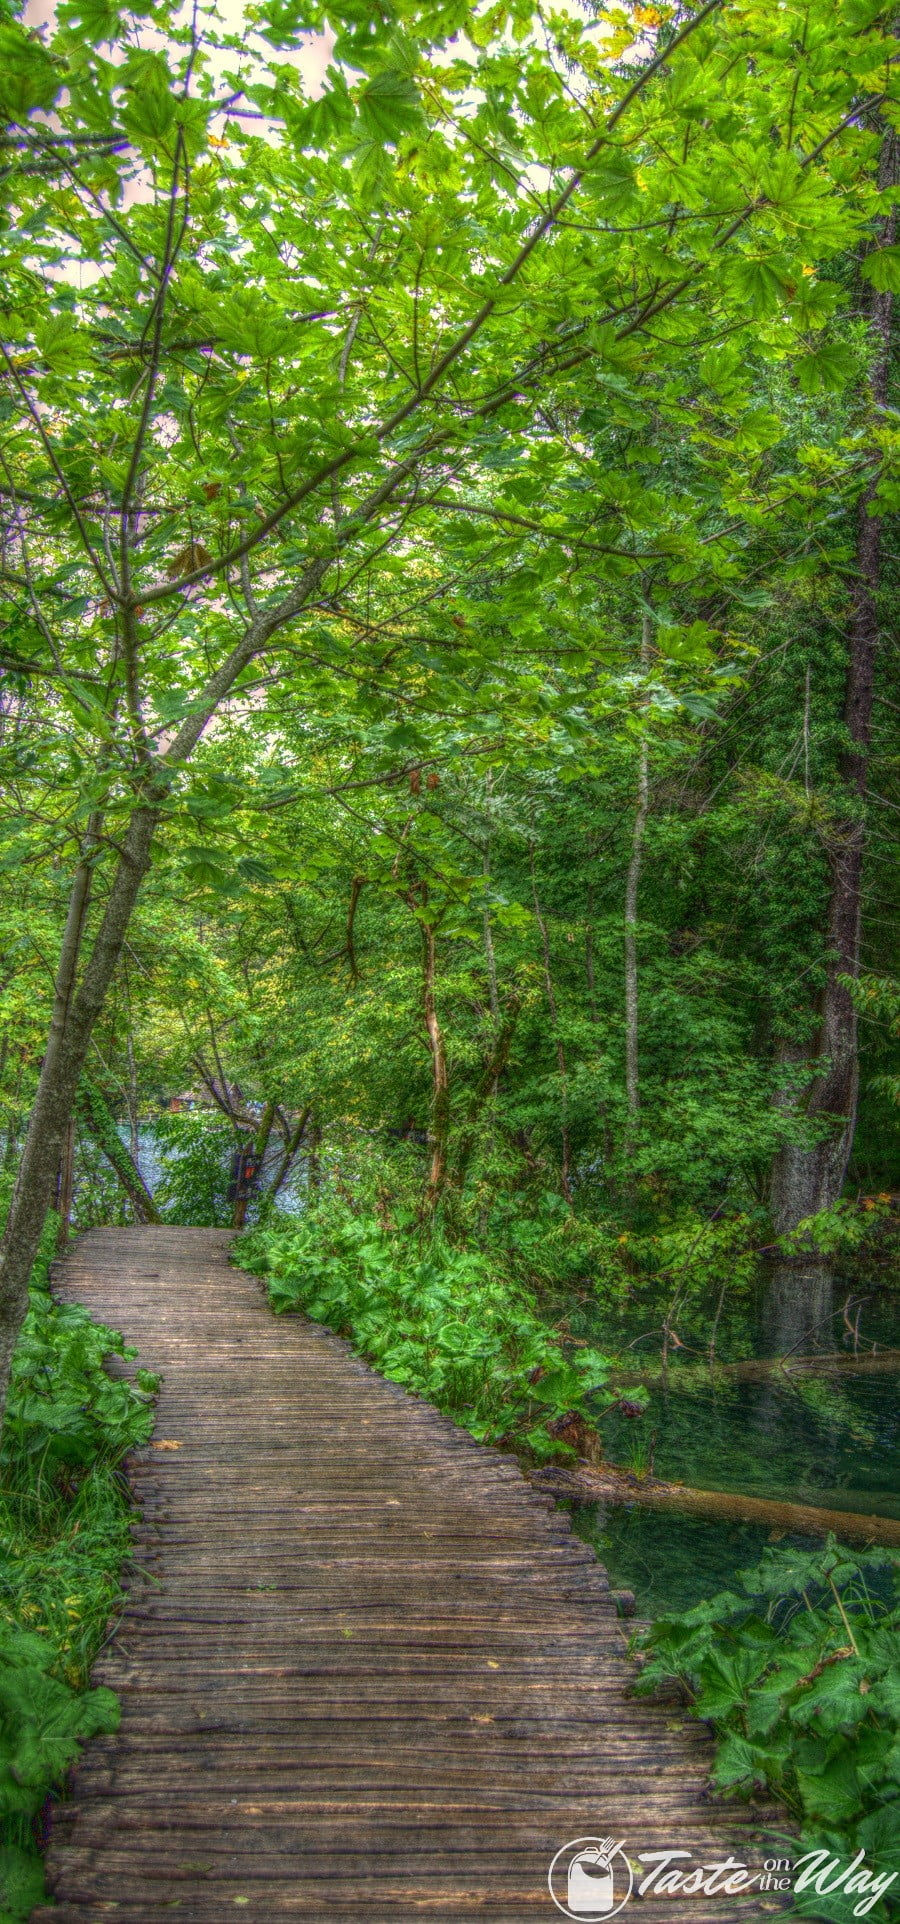 One of the top #tips visiting #Plitvice Lakes National Park in #Croatia is to watch out out for the slippery paths. Check out for more! #travel #photography @tasteontheway